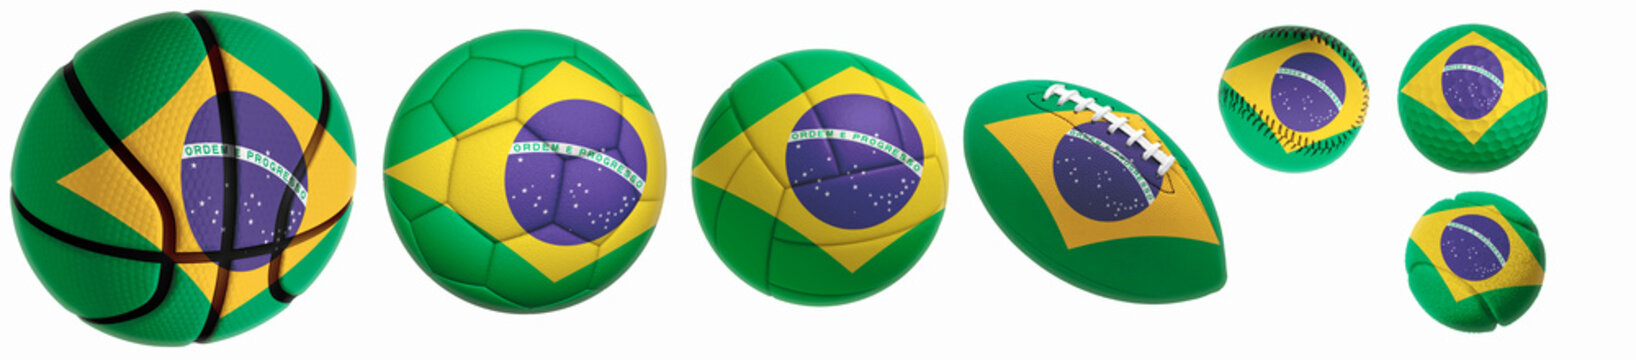 flag superimposed on balls: Golf, basketball, volleyball, soccer, tennis, rugby, baseball isolated on a white background. 3d rendering